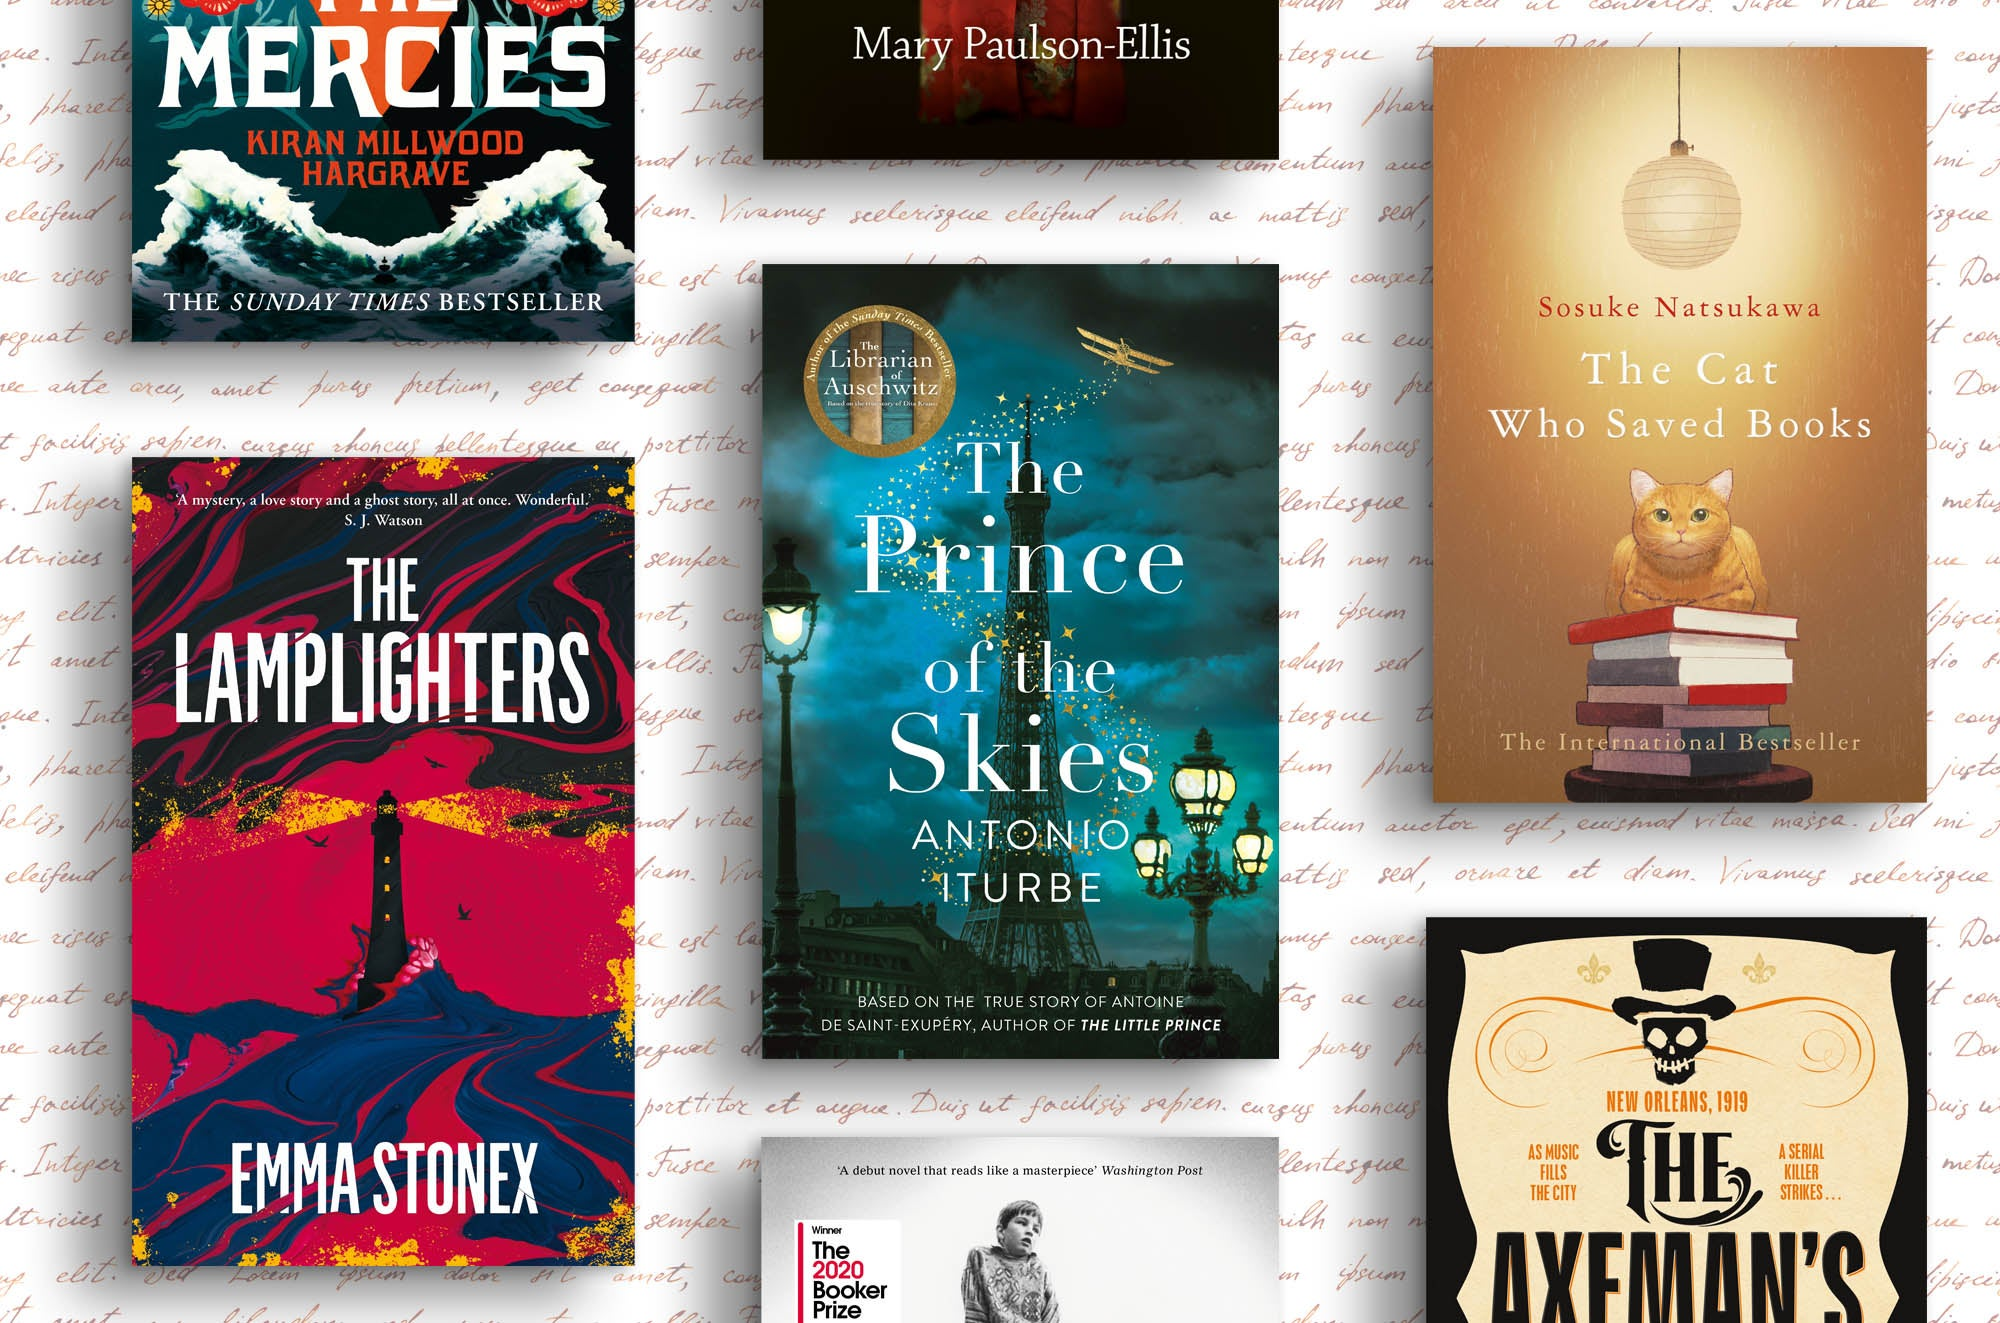 Multiple books against a paper background, including The Lamplighters, The Prince of the Skies, and The Cat Who Saved Books